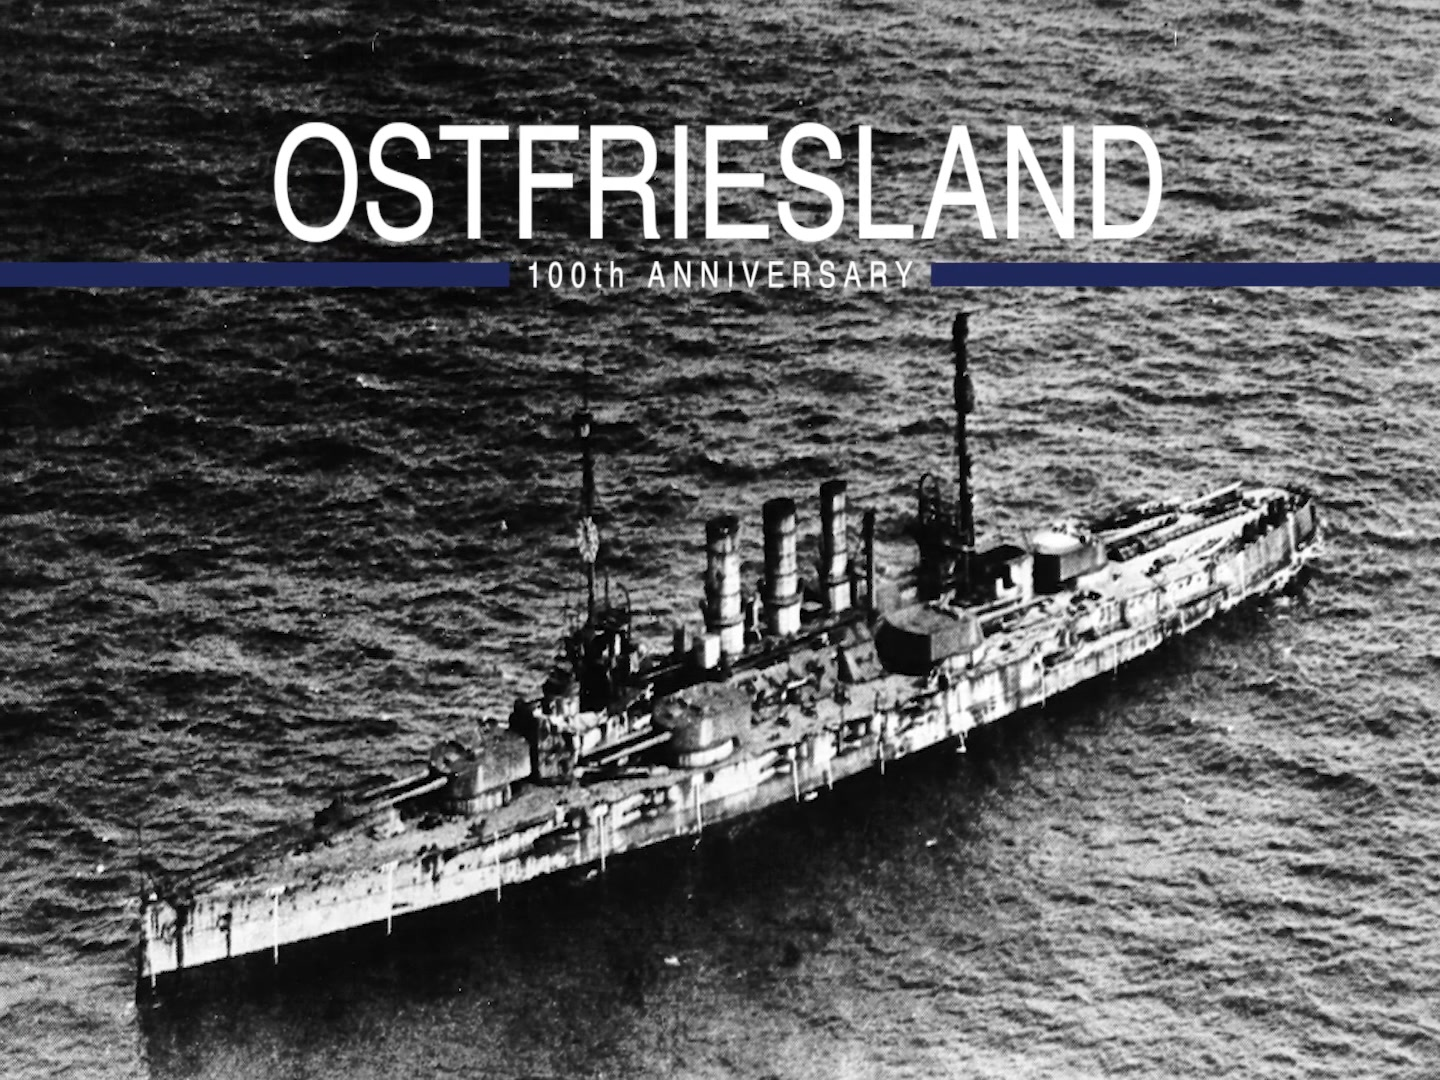 Video of First Provisional Air Brigade of the U.S. Army Air Service, bombing the Ostfriesland off of the Virginia Capes on July 21st, 1921.